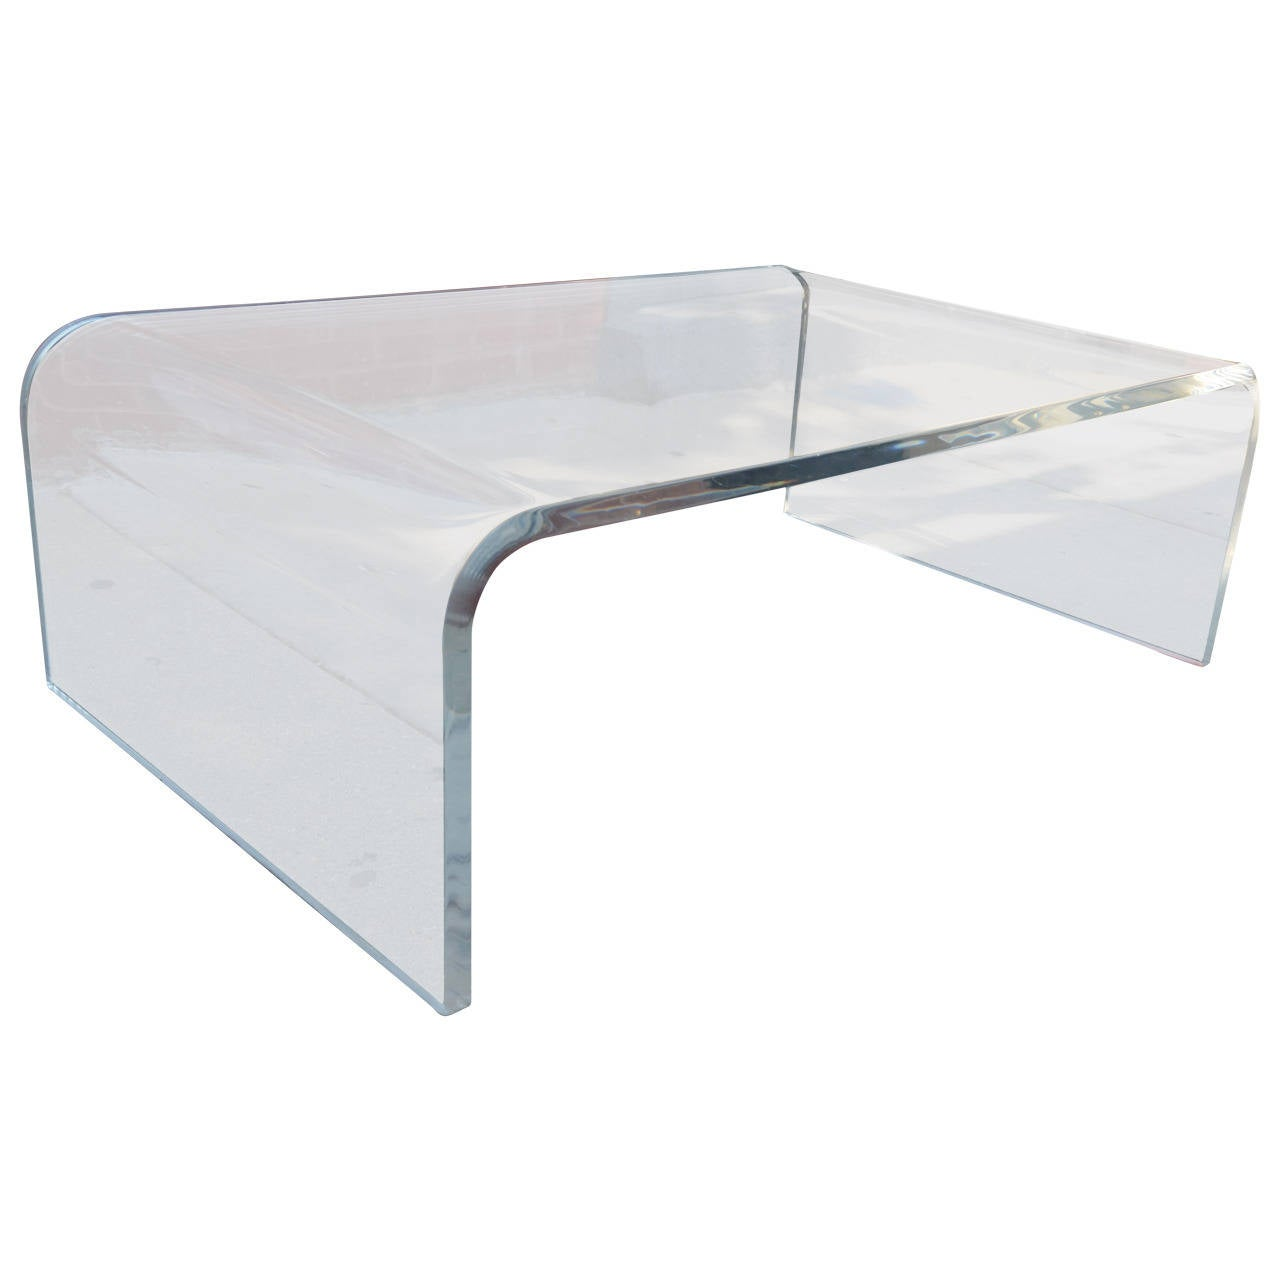 Lucite waterfall coffee table at 1stdibs for Used acrylic coffee table